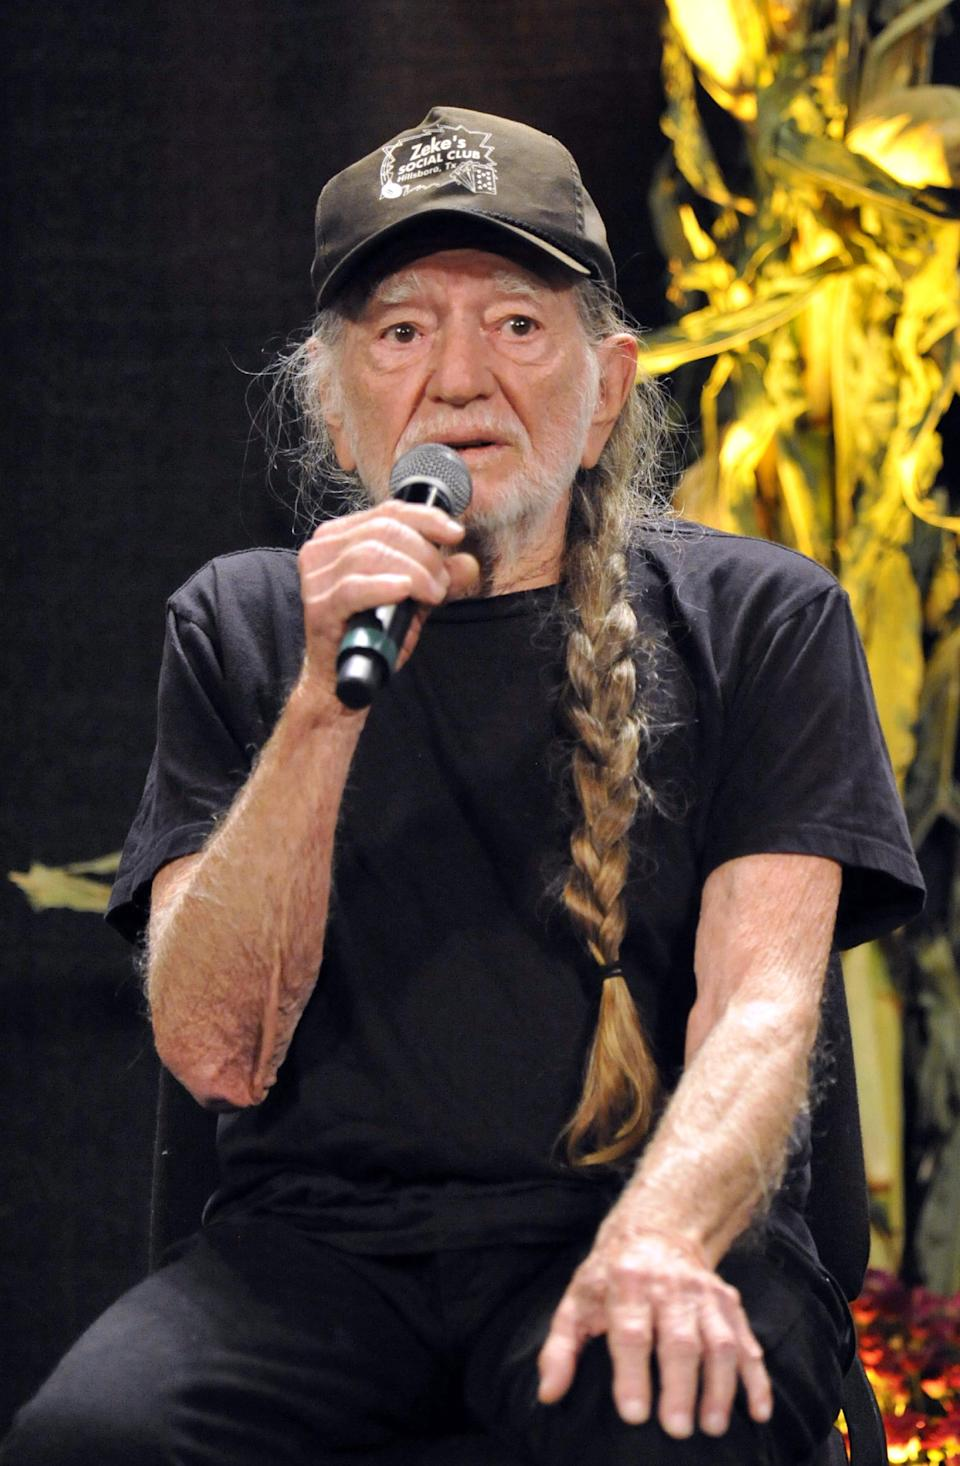 Willie Nelson talks with reporters during a news conference prior to the start of the Farm Aid 2013 concert at Saratoga Performing Arts Center in Saratoga Springs, N.Y., Saturday, Sept. 21, 2013. (AP Photo/Hans Pennink)